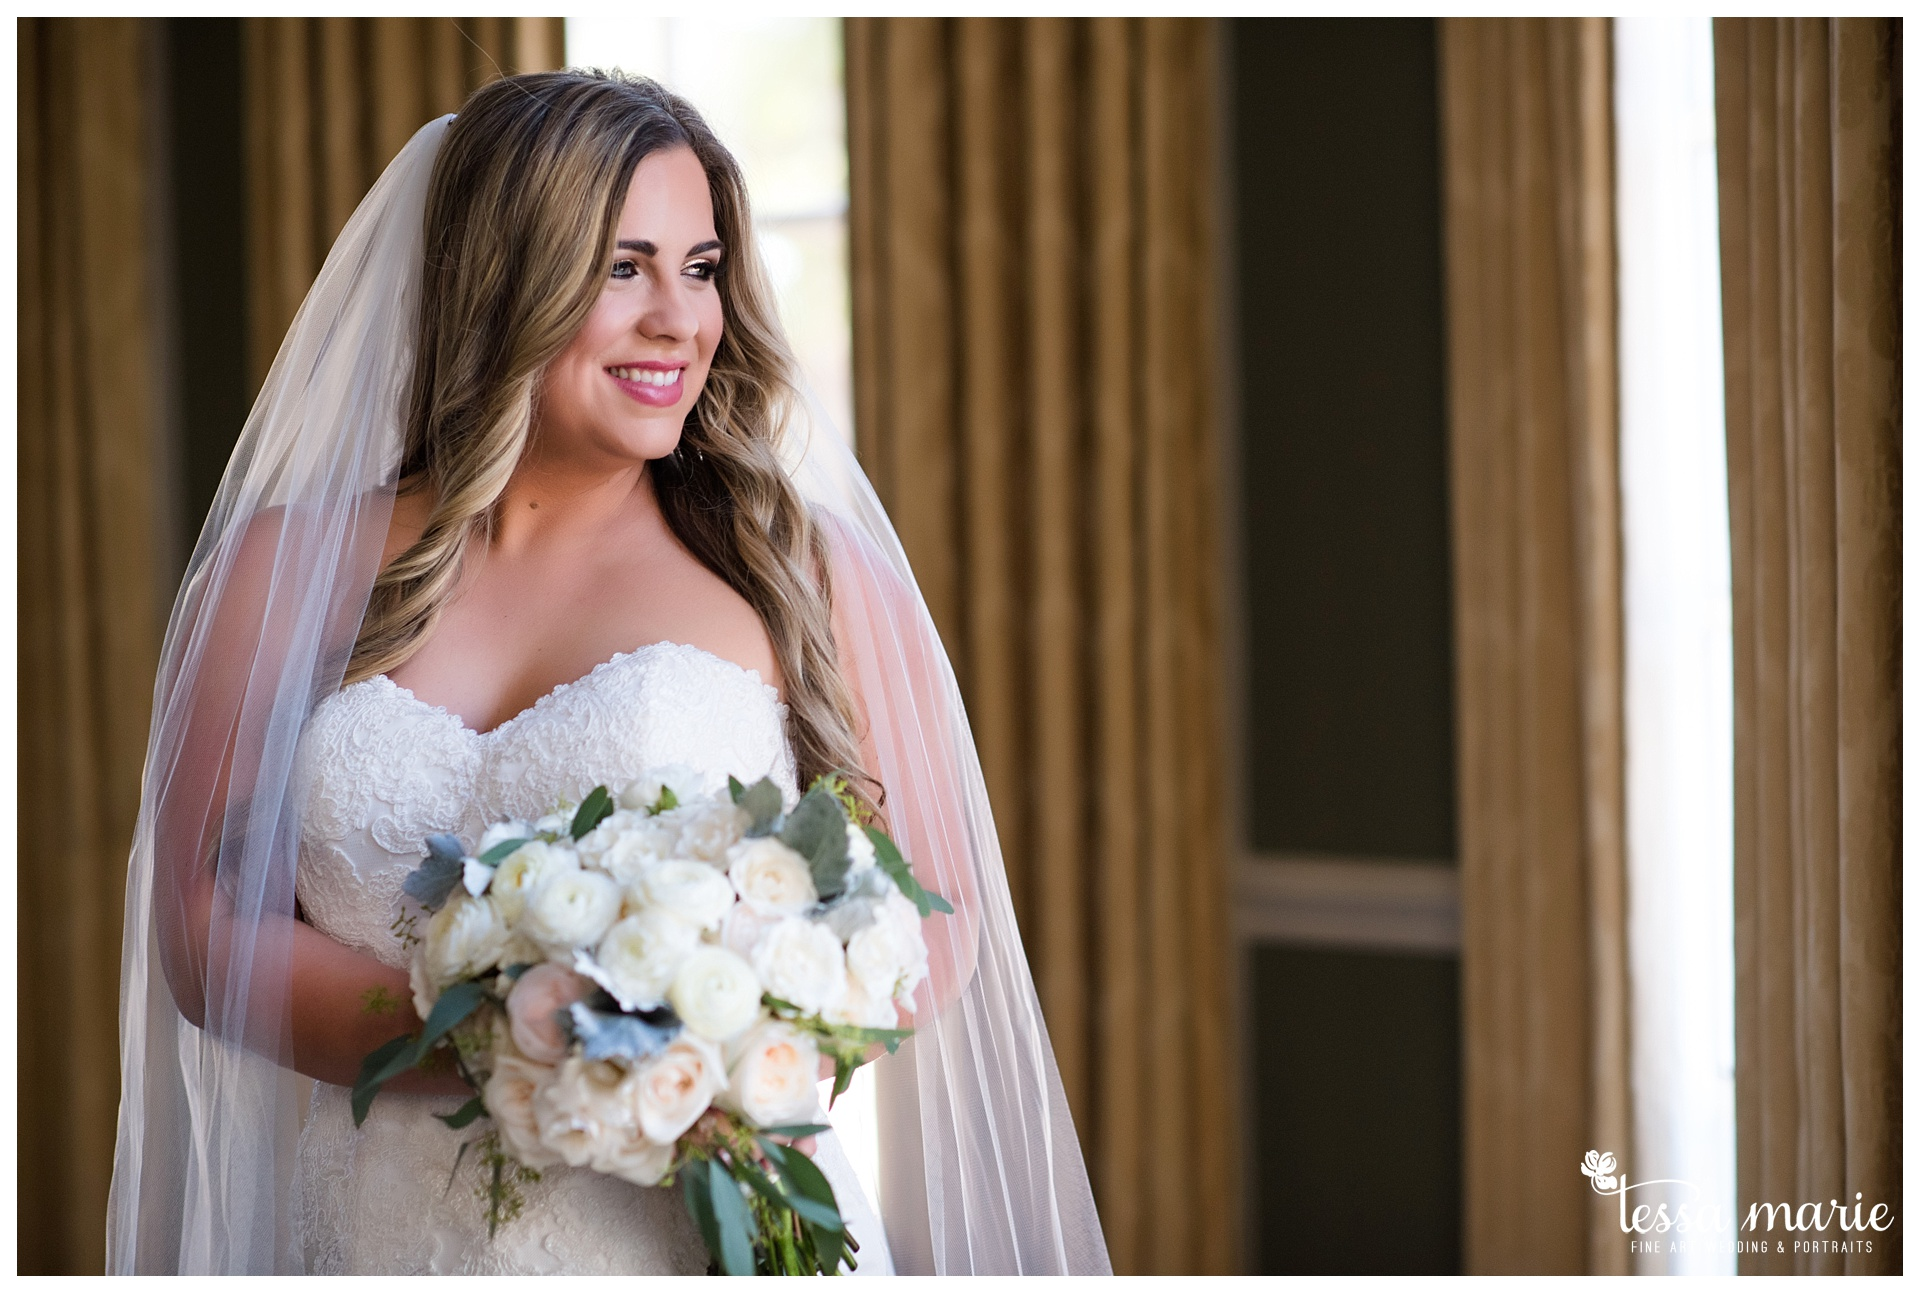 tessa_marie_weddings_legacy_story_focused_wedding_pictures_atlanta_wedding_photographer_0076